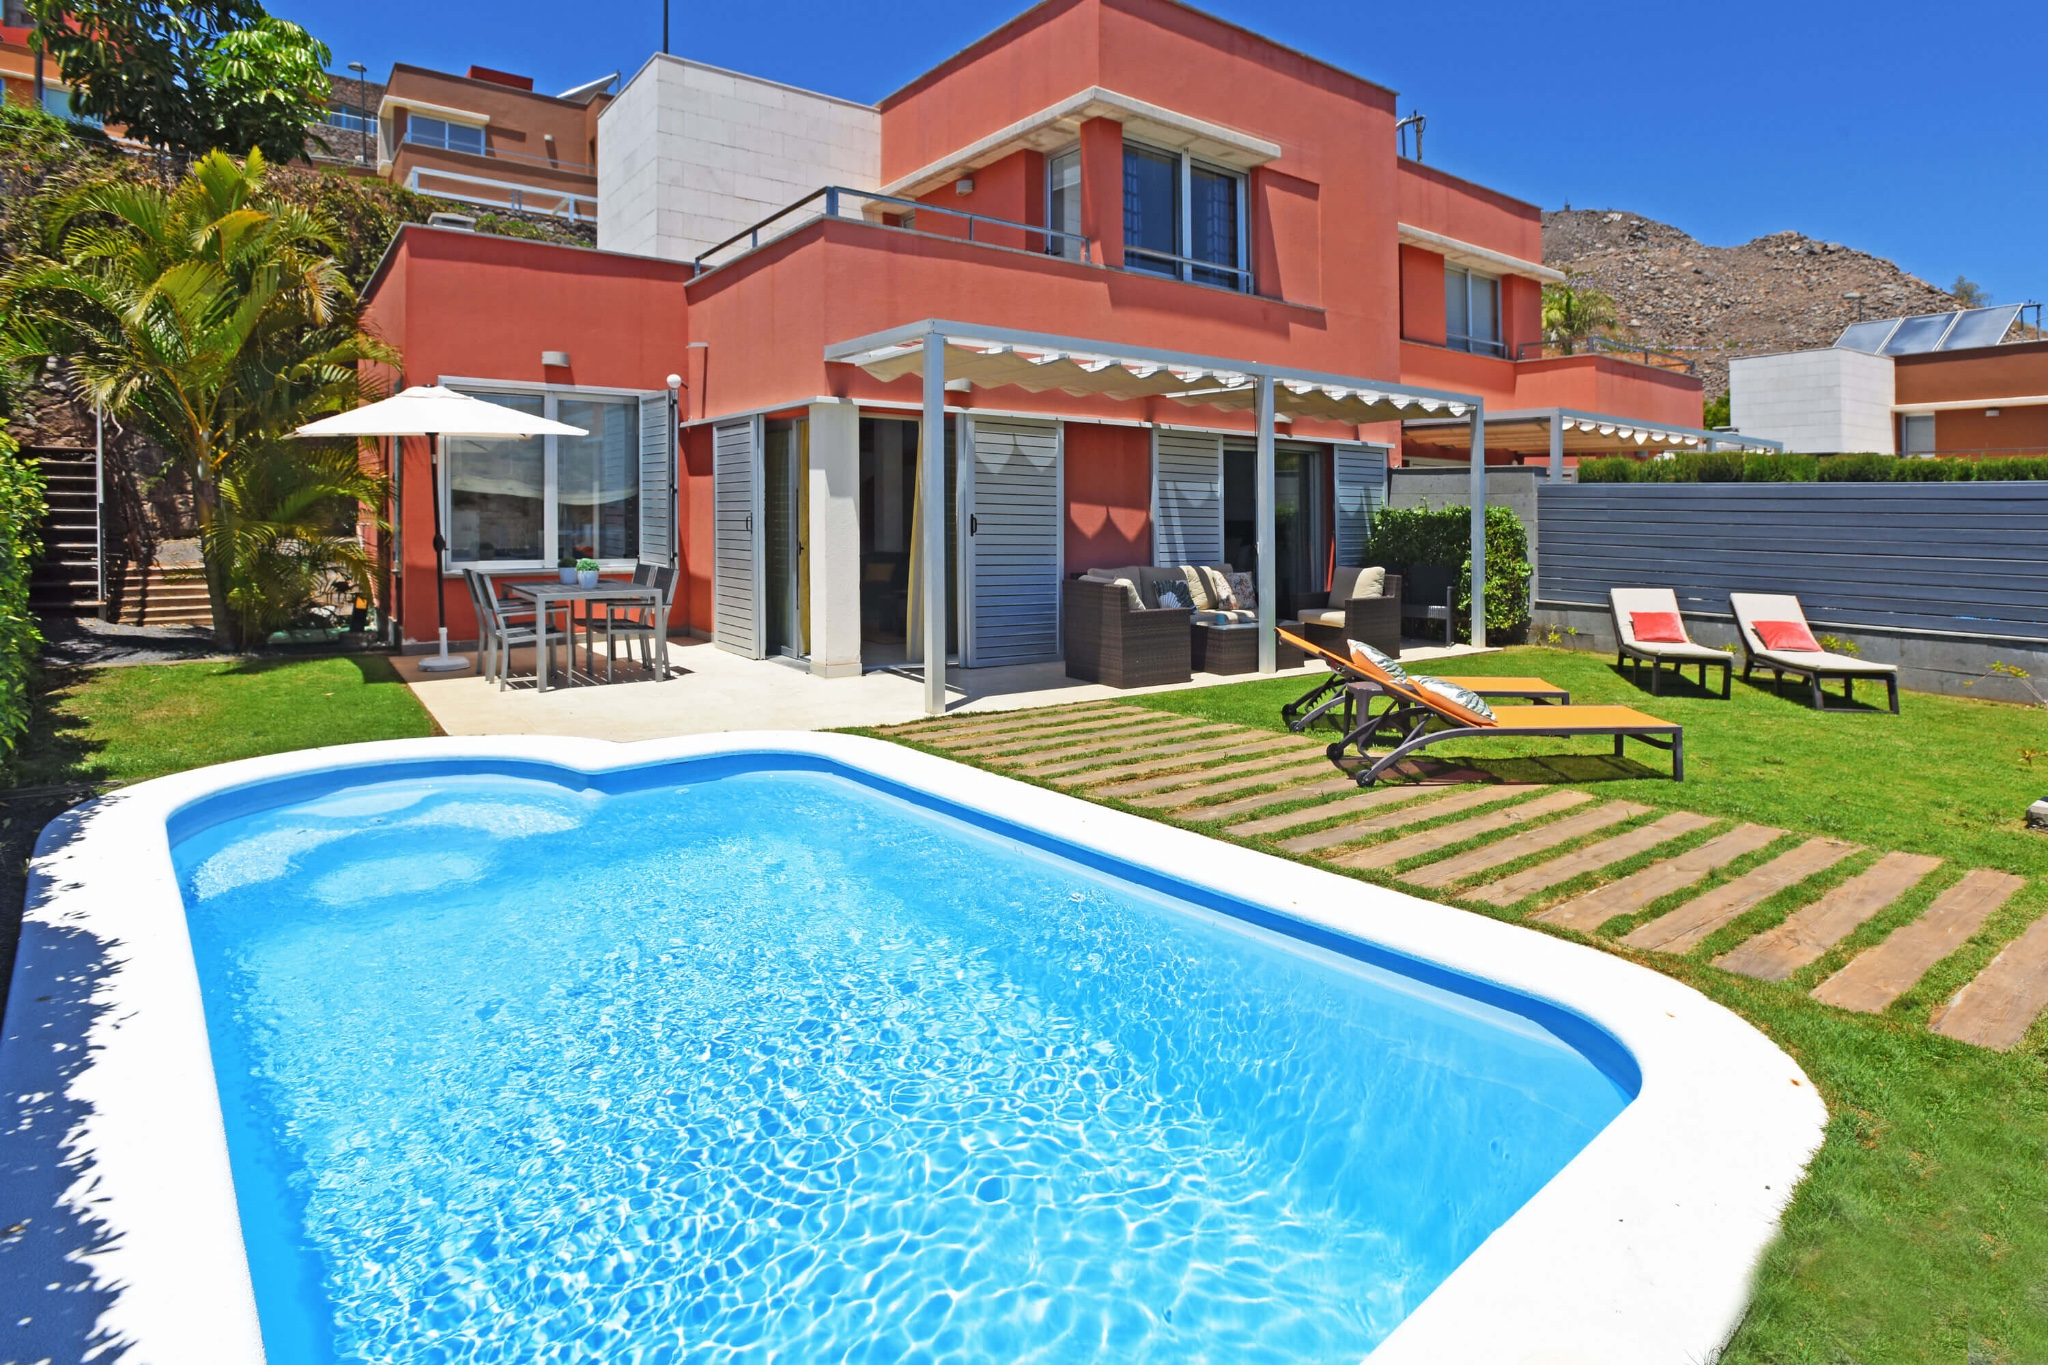 Two storey villa with two terraces, nice outside area with garden furniture and pool overlooking the northern golf course